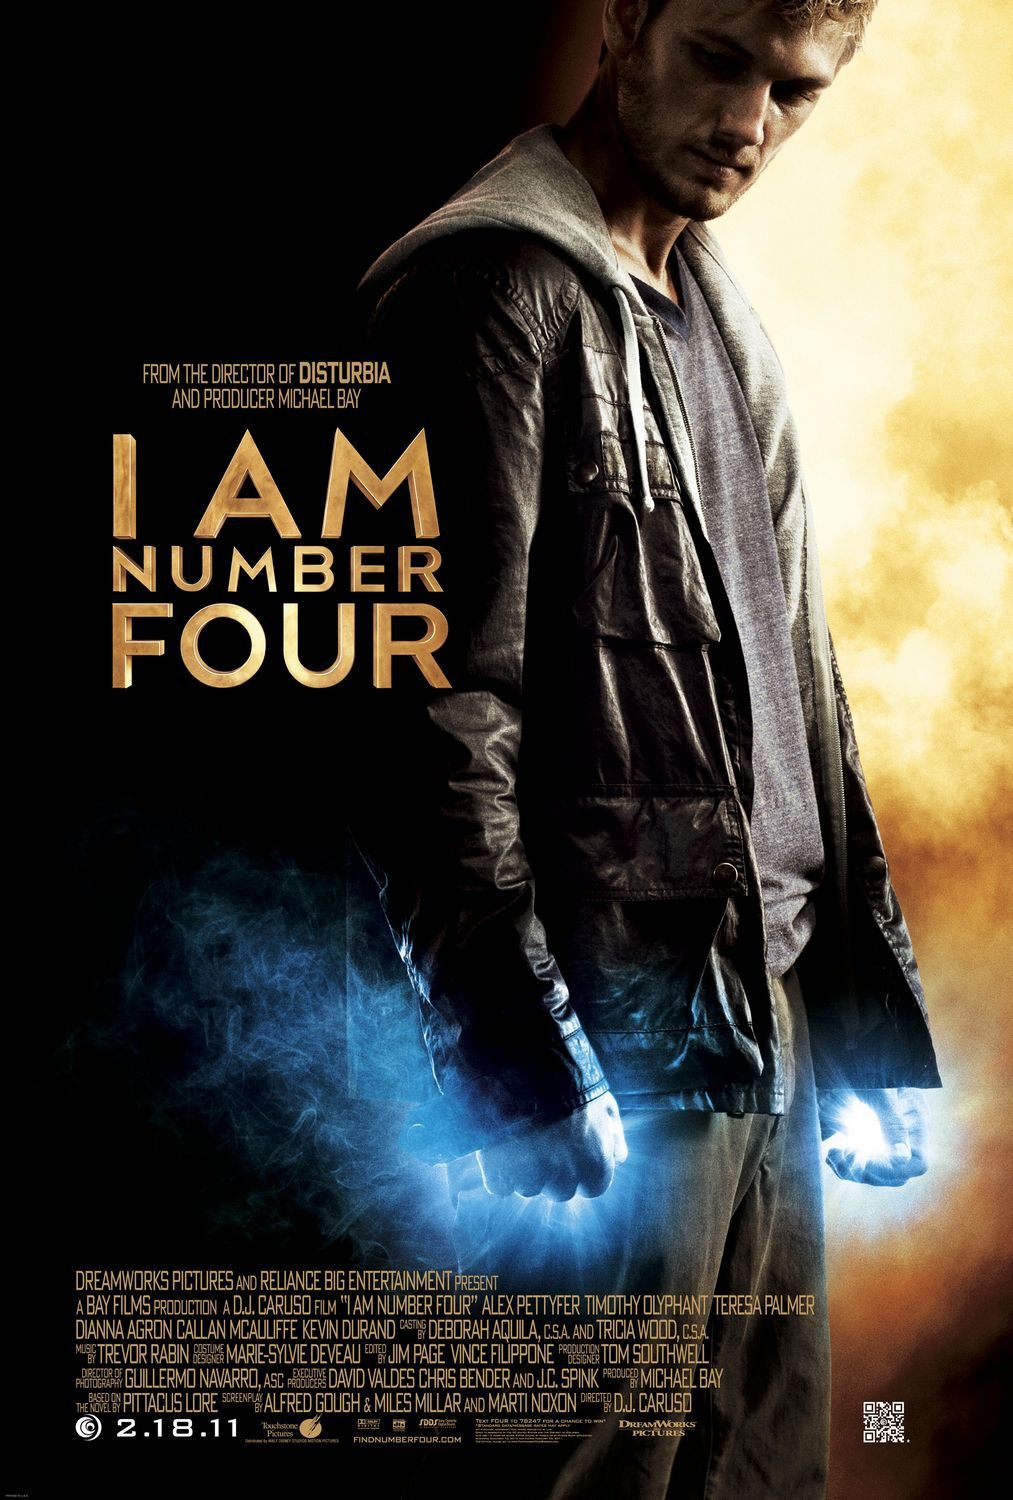 I am Number Four - Io sono il Numero 4 - fantascienza science fiction film poster power light